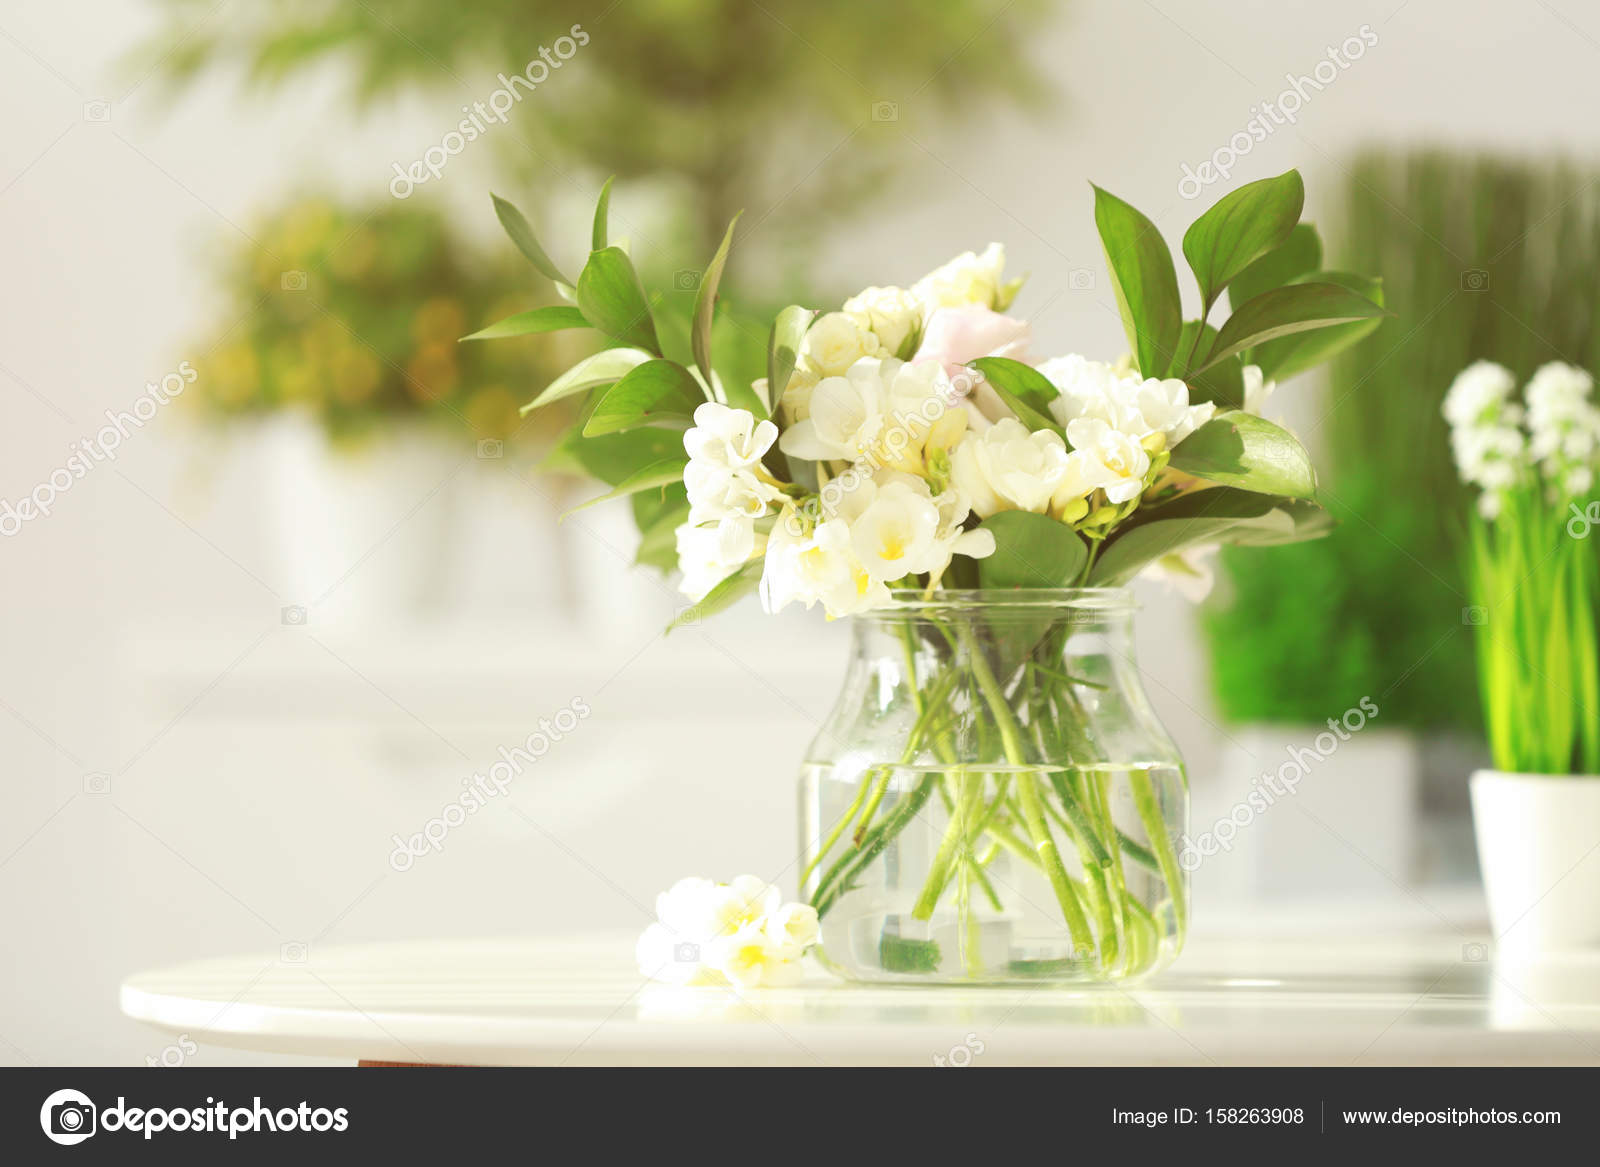 Beautiful Bouquet With White Freesia Flowers Stock Photo